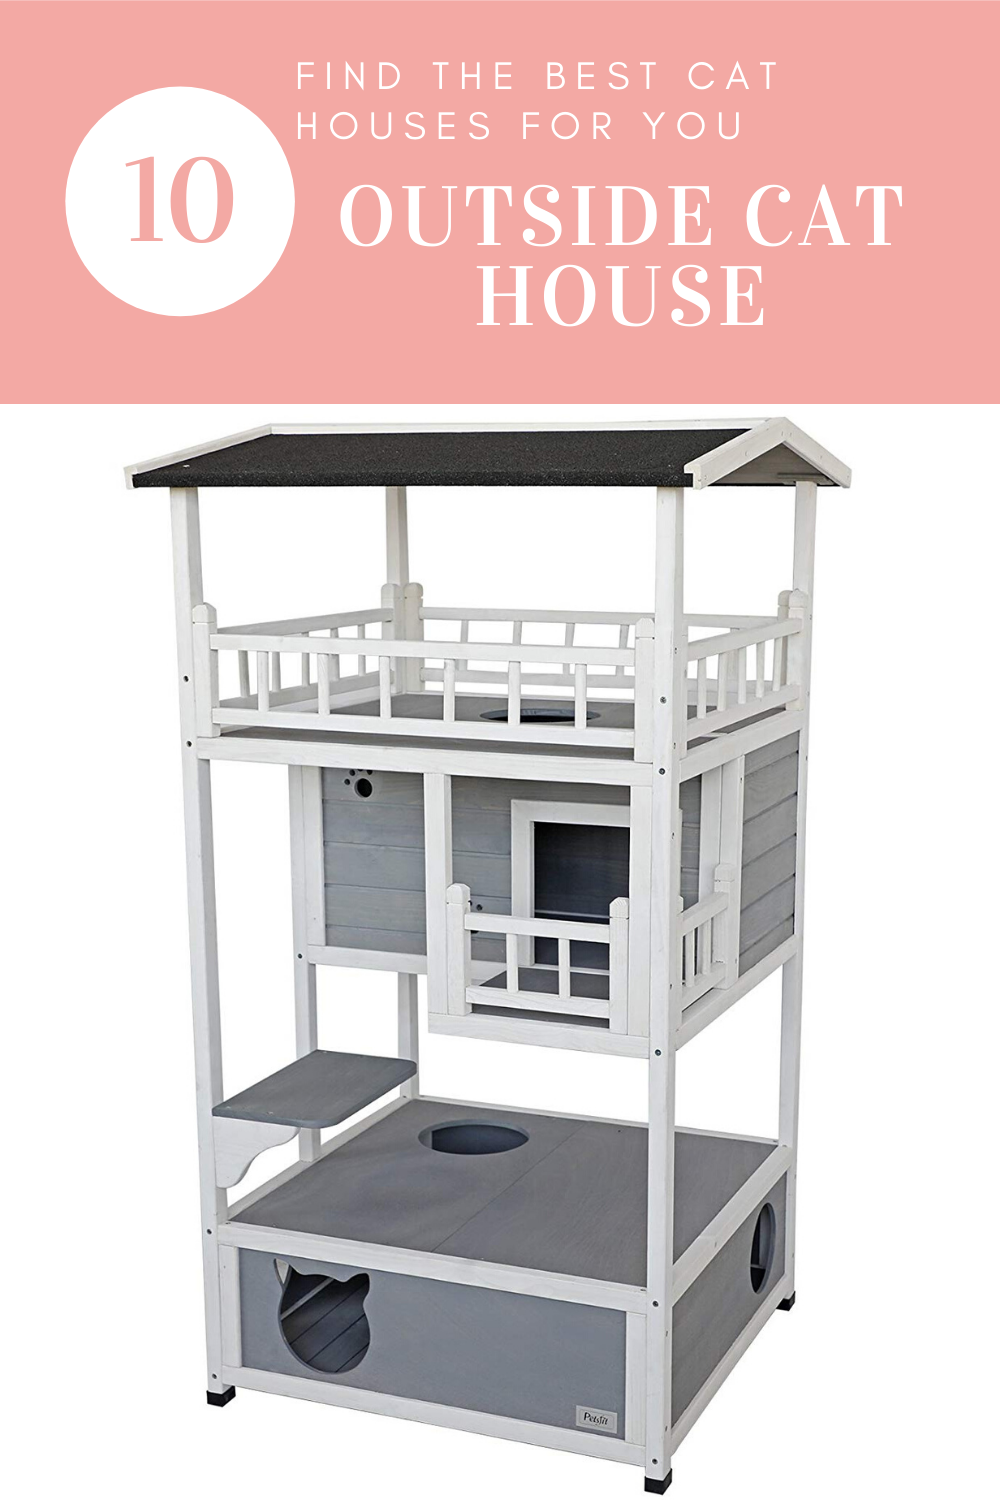 Top10 outside cat house in 2020 Outdoor cat house diy